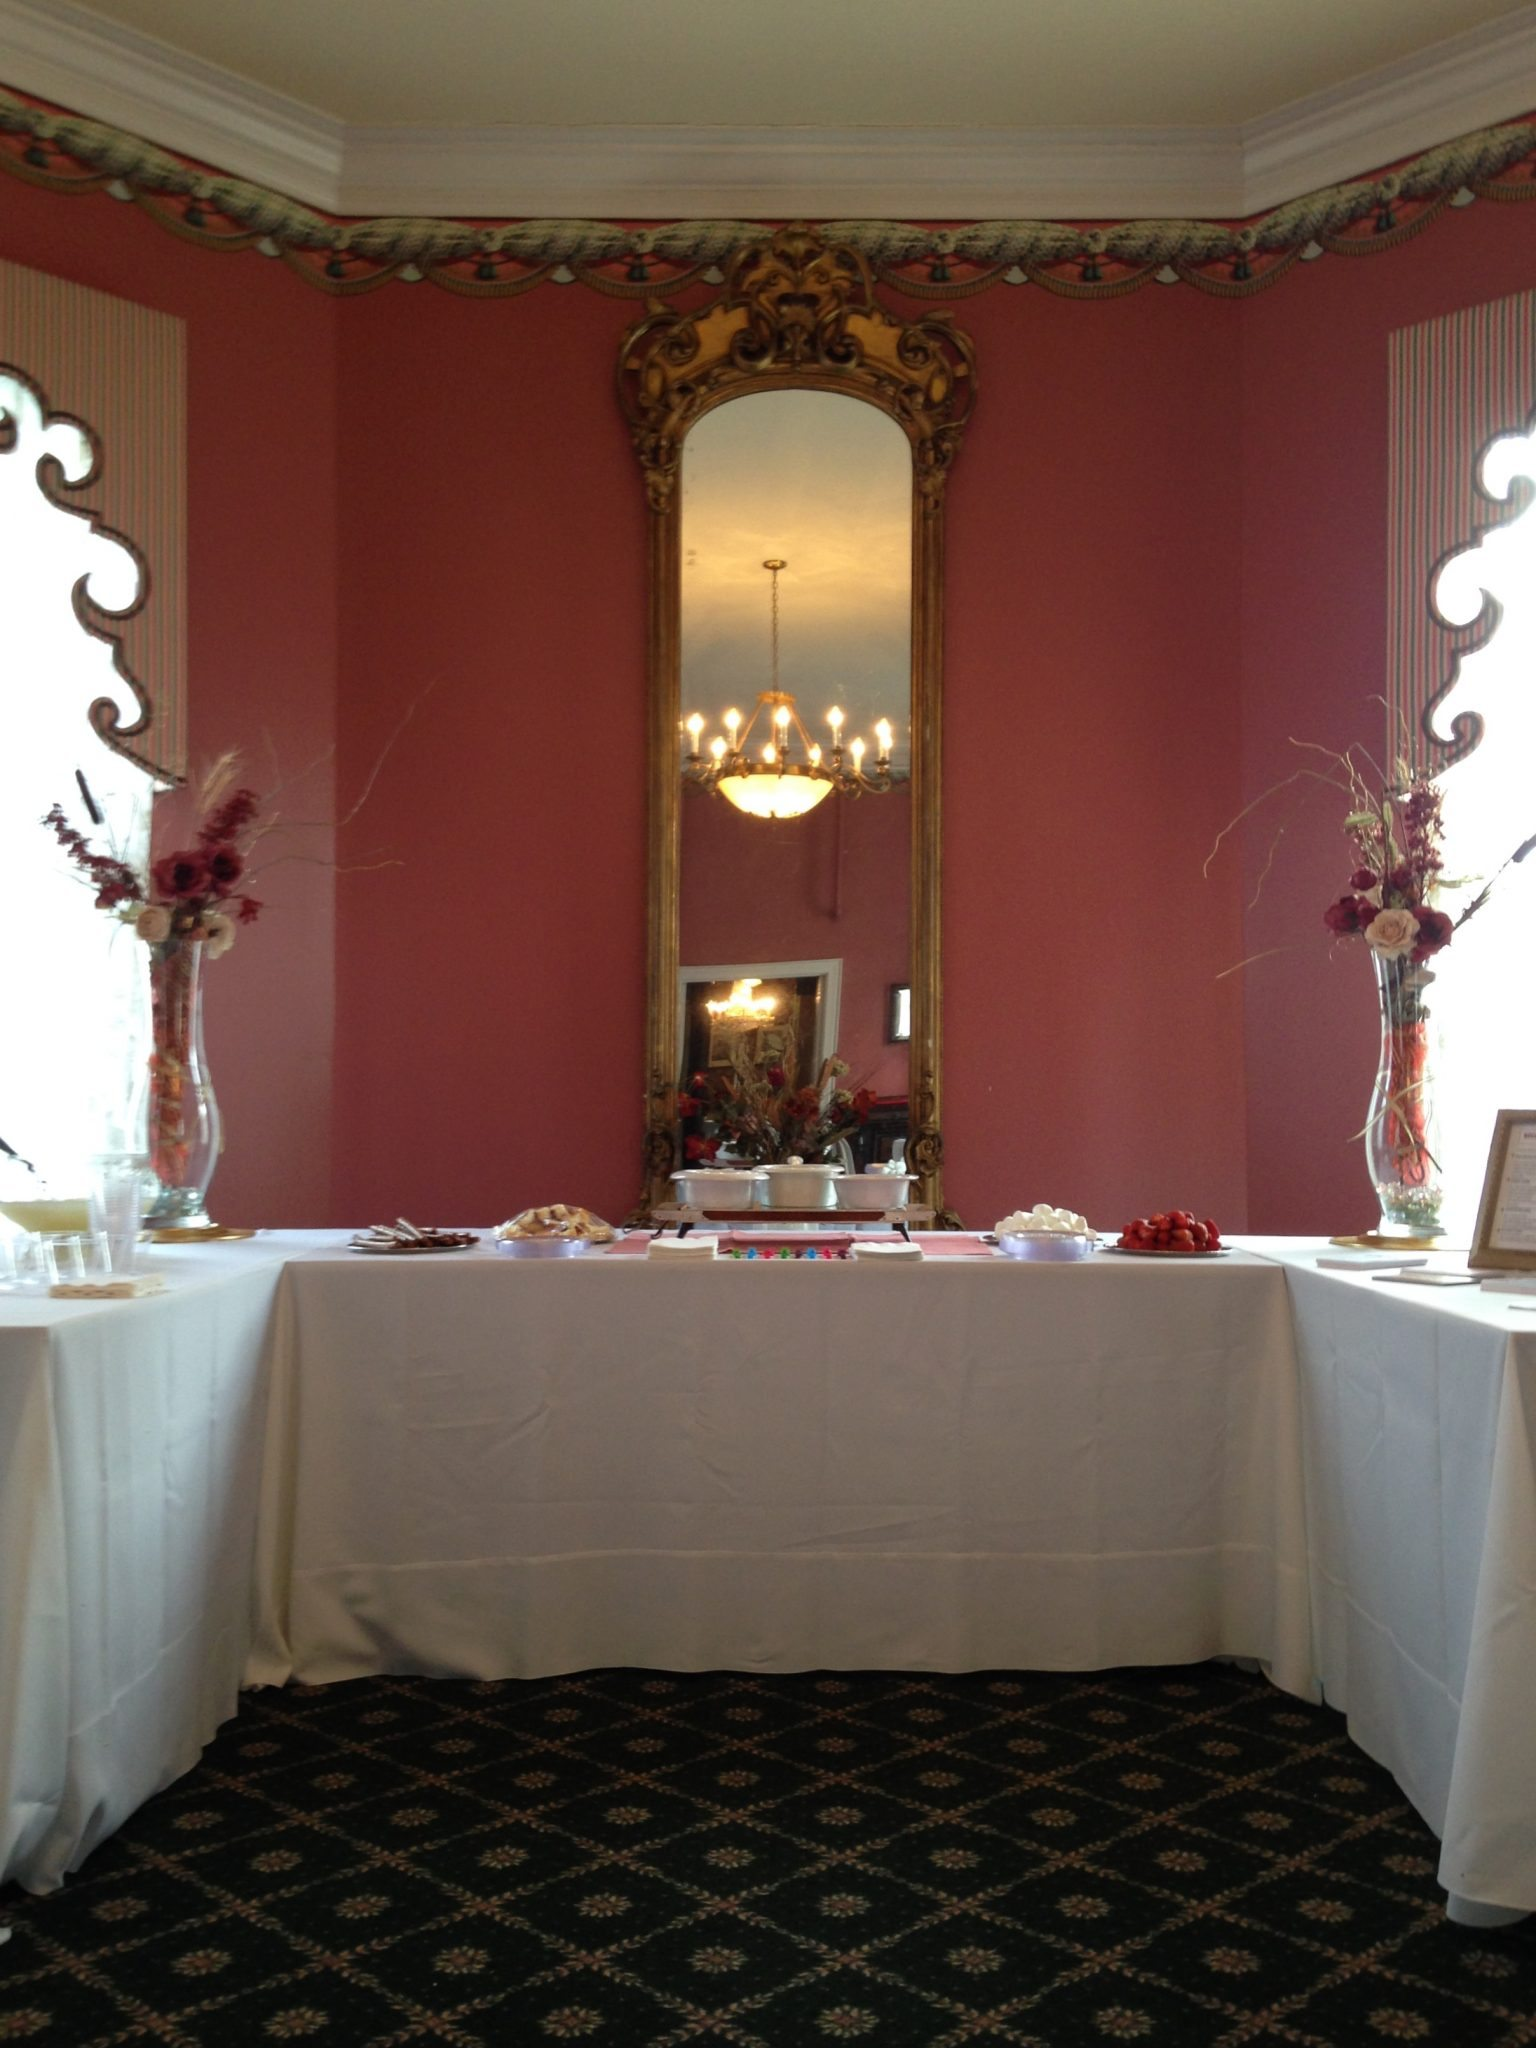 Christmas Decorations At Haskins : Weddings in haskins hall conrad caldwell house museum